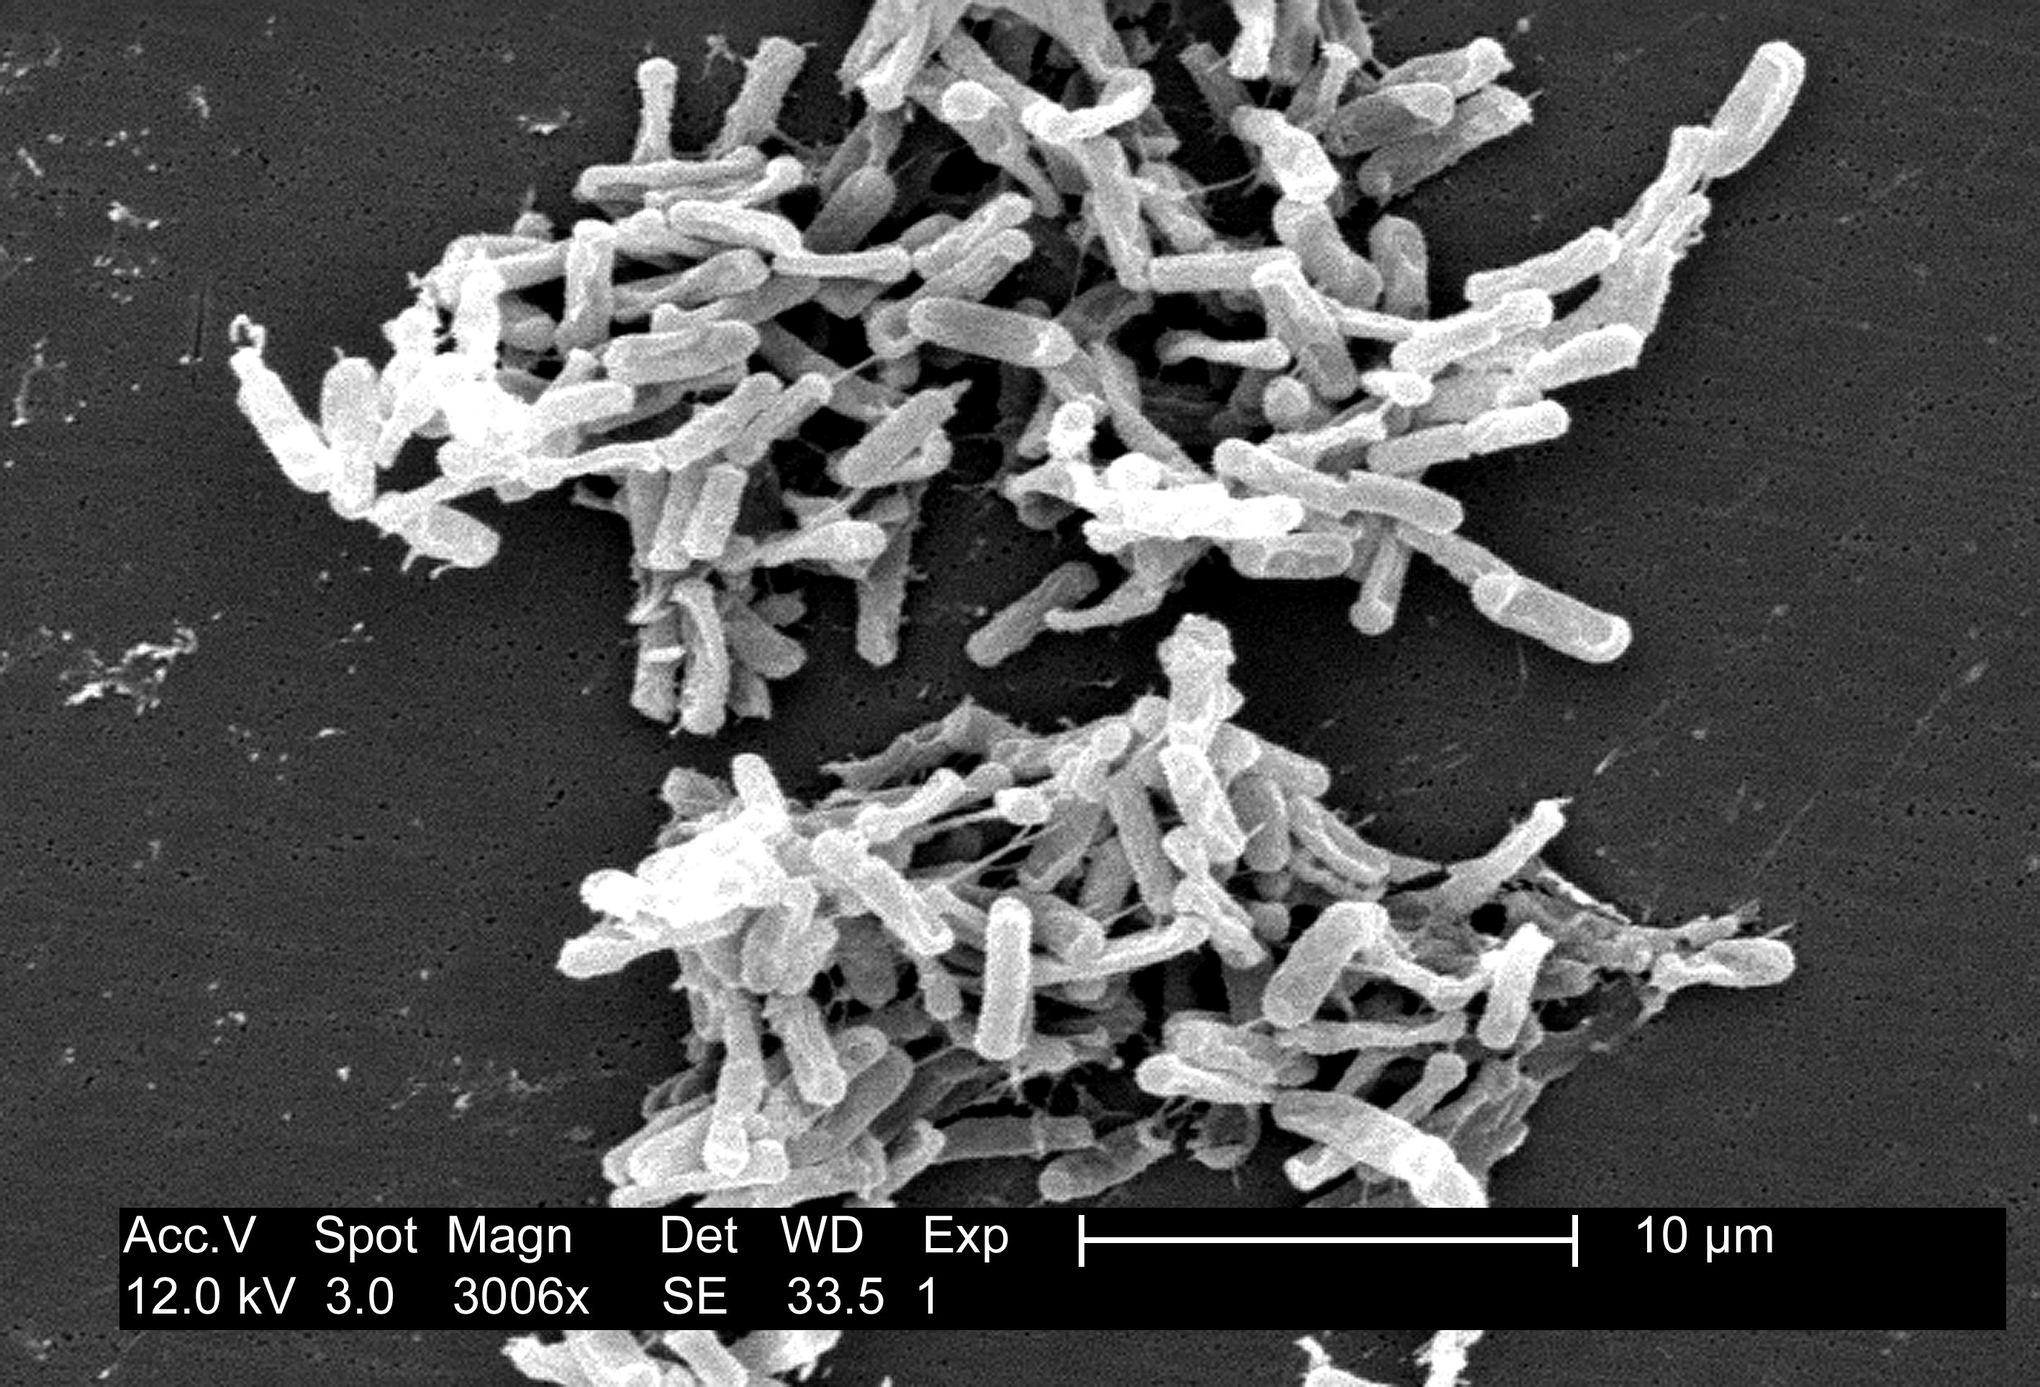 C.Diff - Clostridium difficile